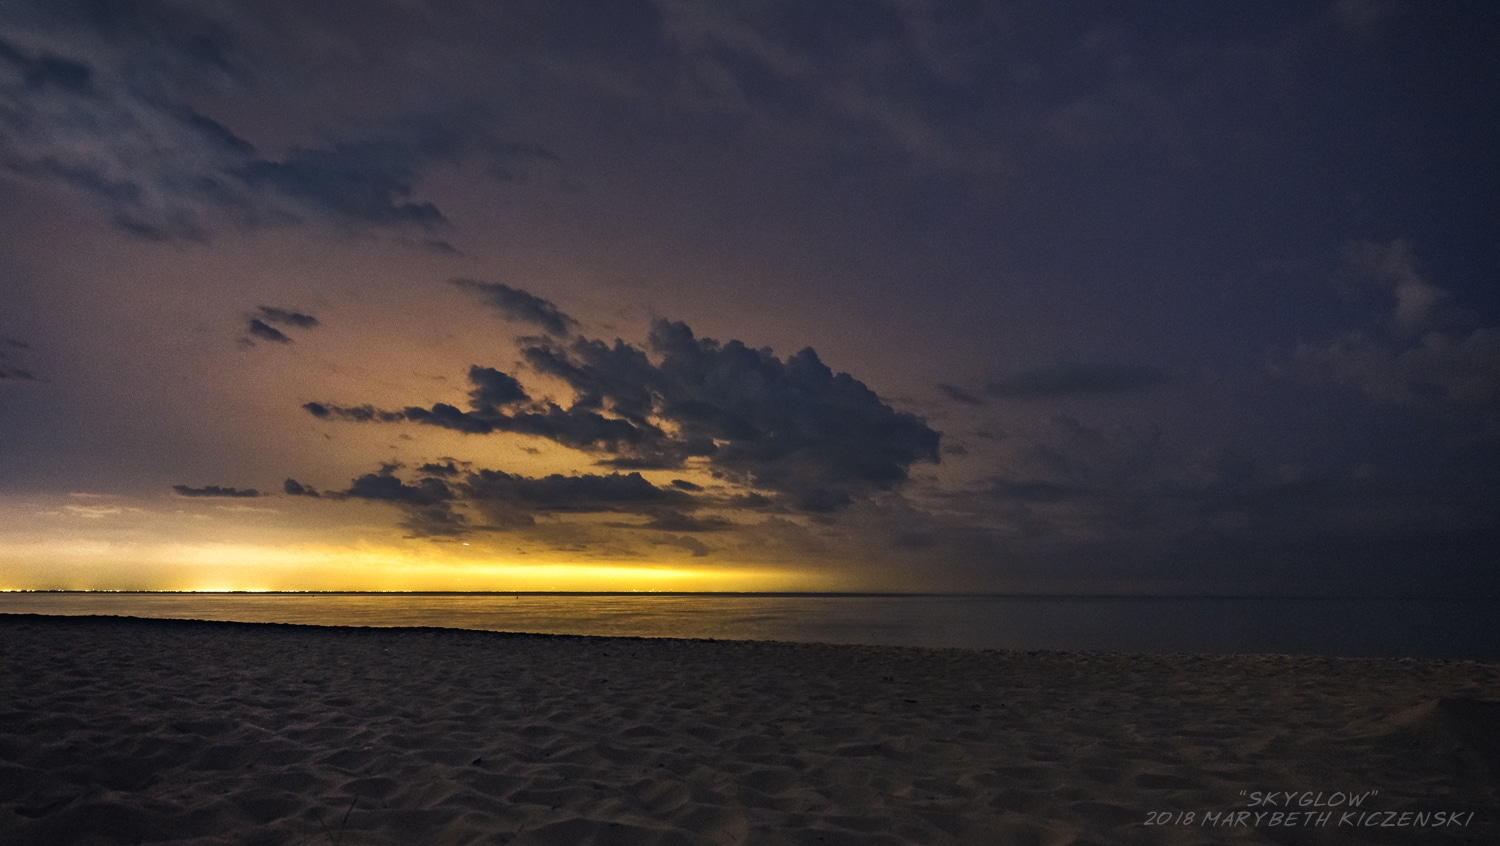 """Nope, that is not a sunset!  That is Chicago's Skyglow as seem from Indiana Dunes National Park.  From MilkyWayPhotographers.com, """"Top Milky Way Photography Tricks That Aren't Tricks!"""" Photo Credit: MaryBeth Kiczenski"""